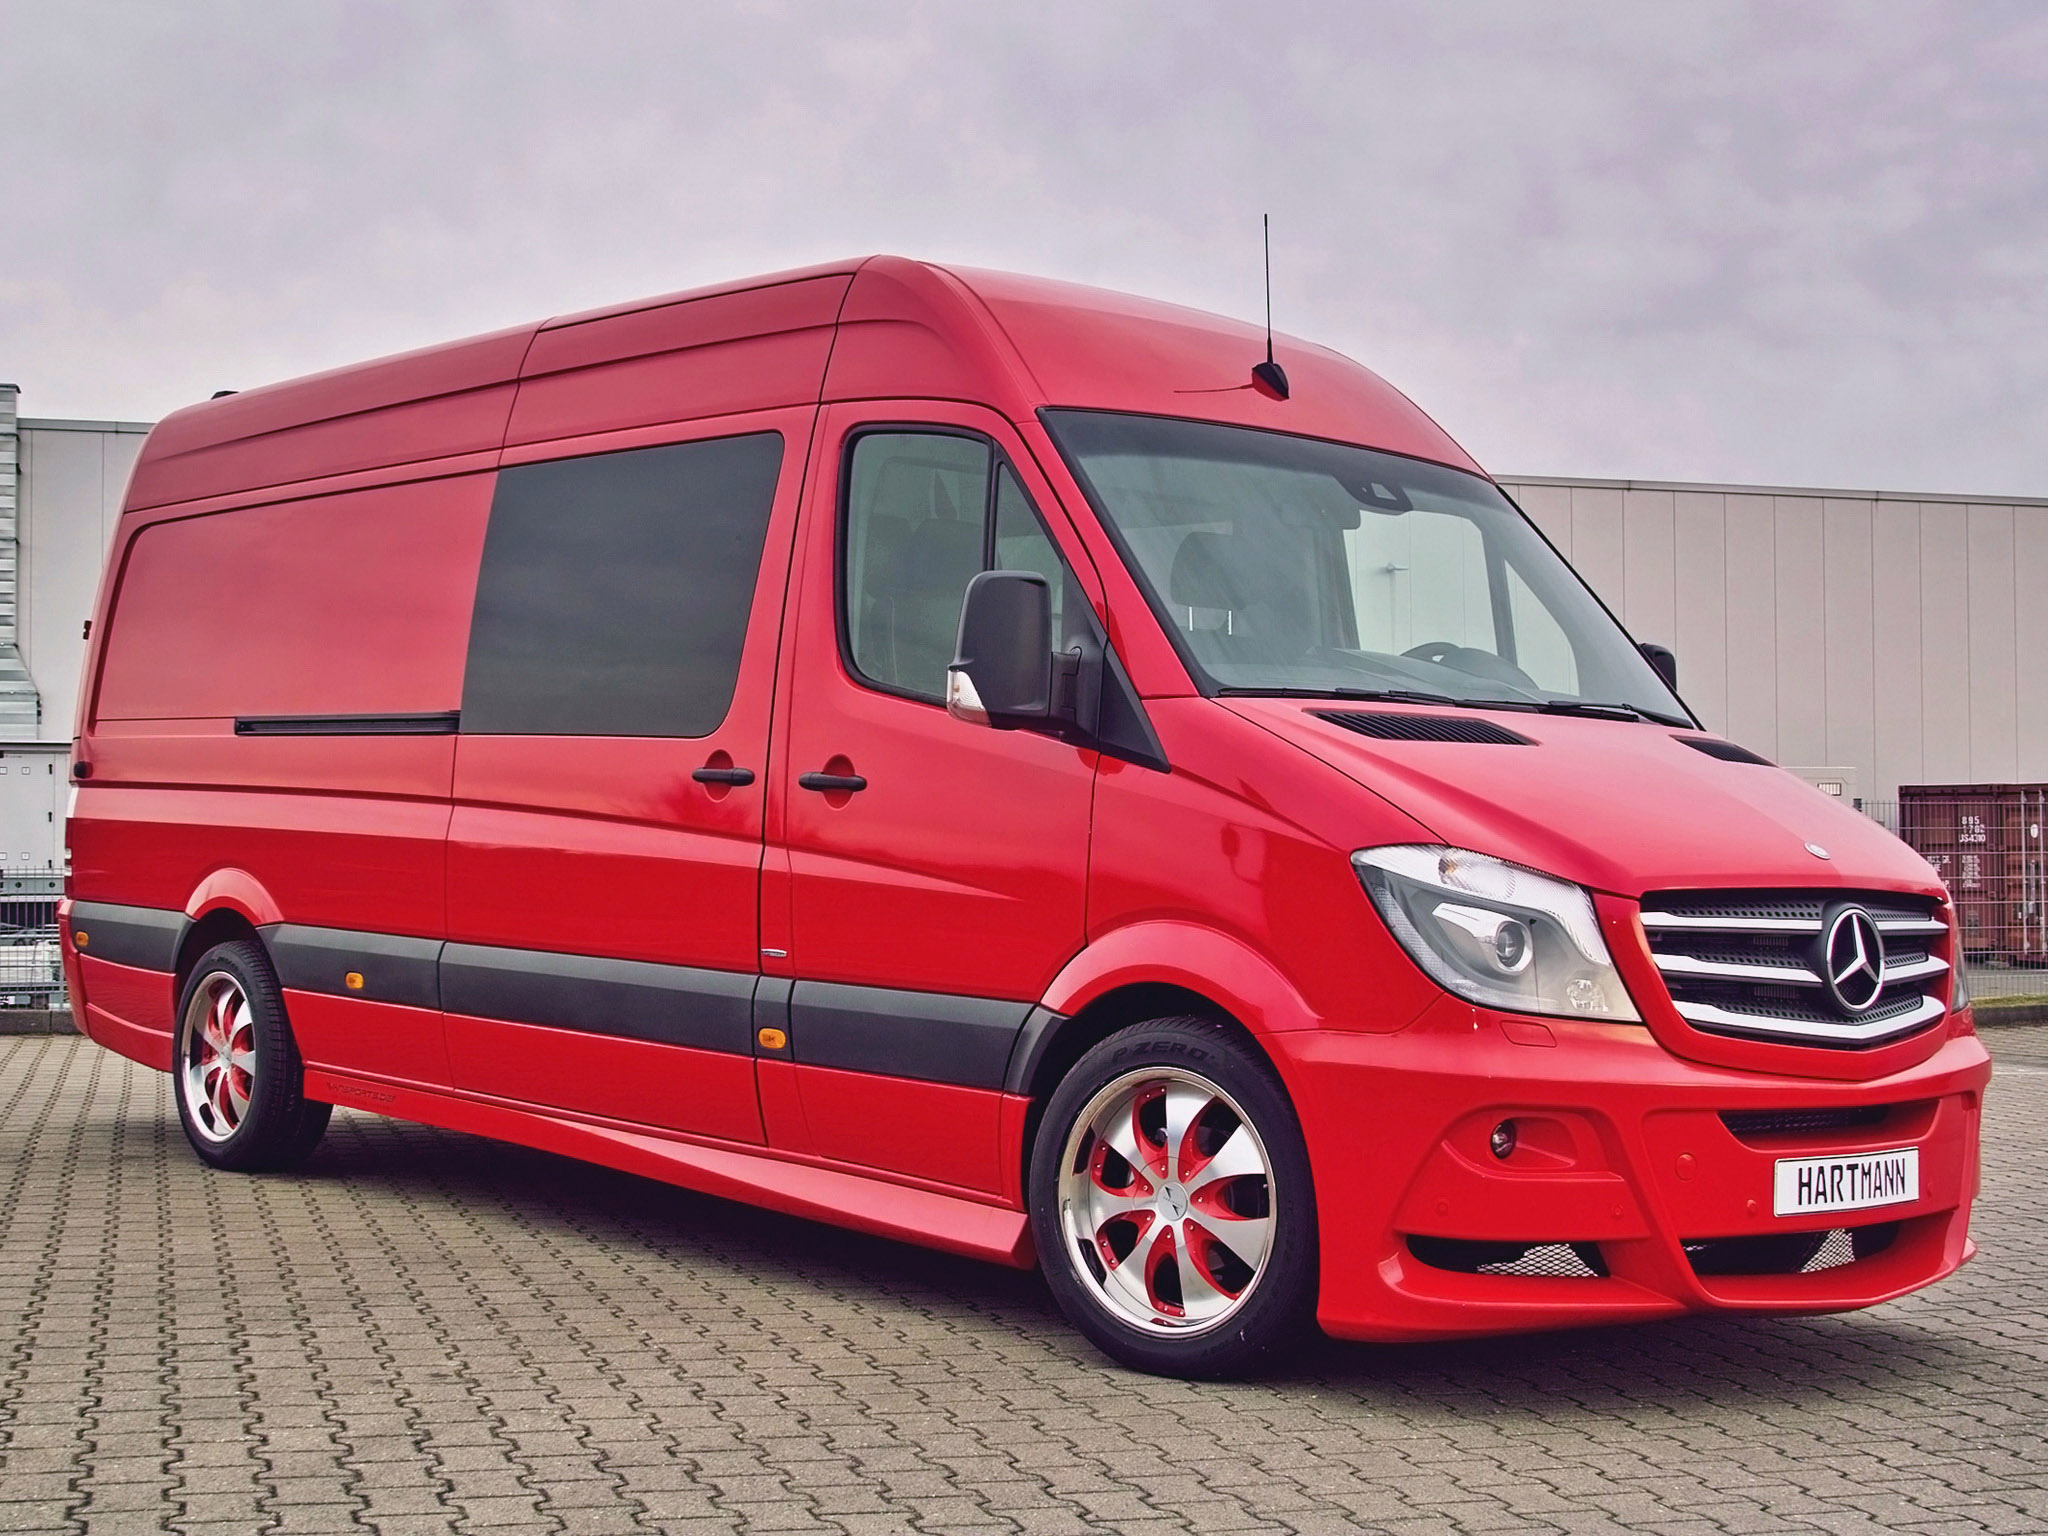 mercedes benz sprinter 319 2014 technical specifications interior and exterior photo. Black Bedroom Furniture Sets. Home Design Ideas